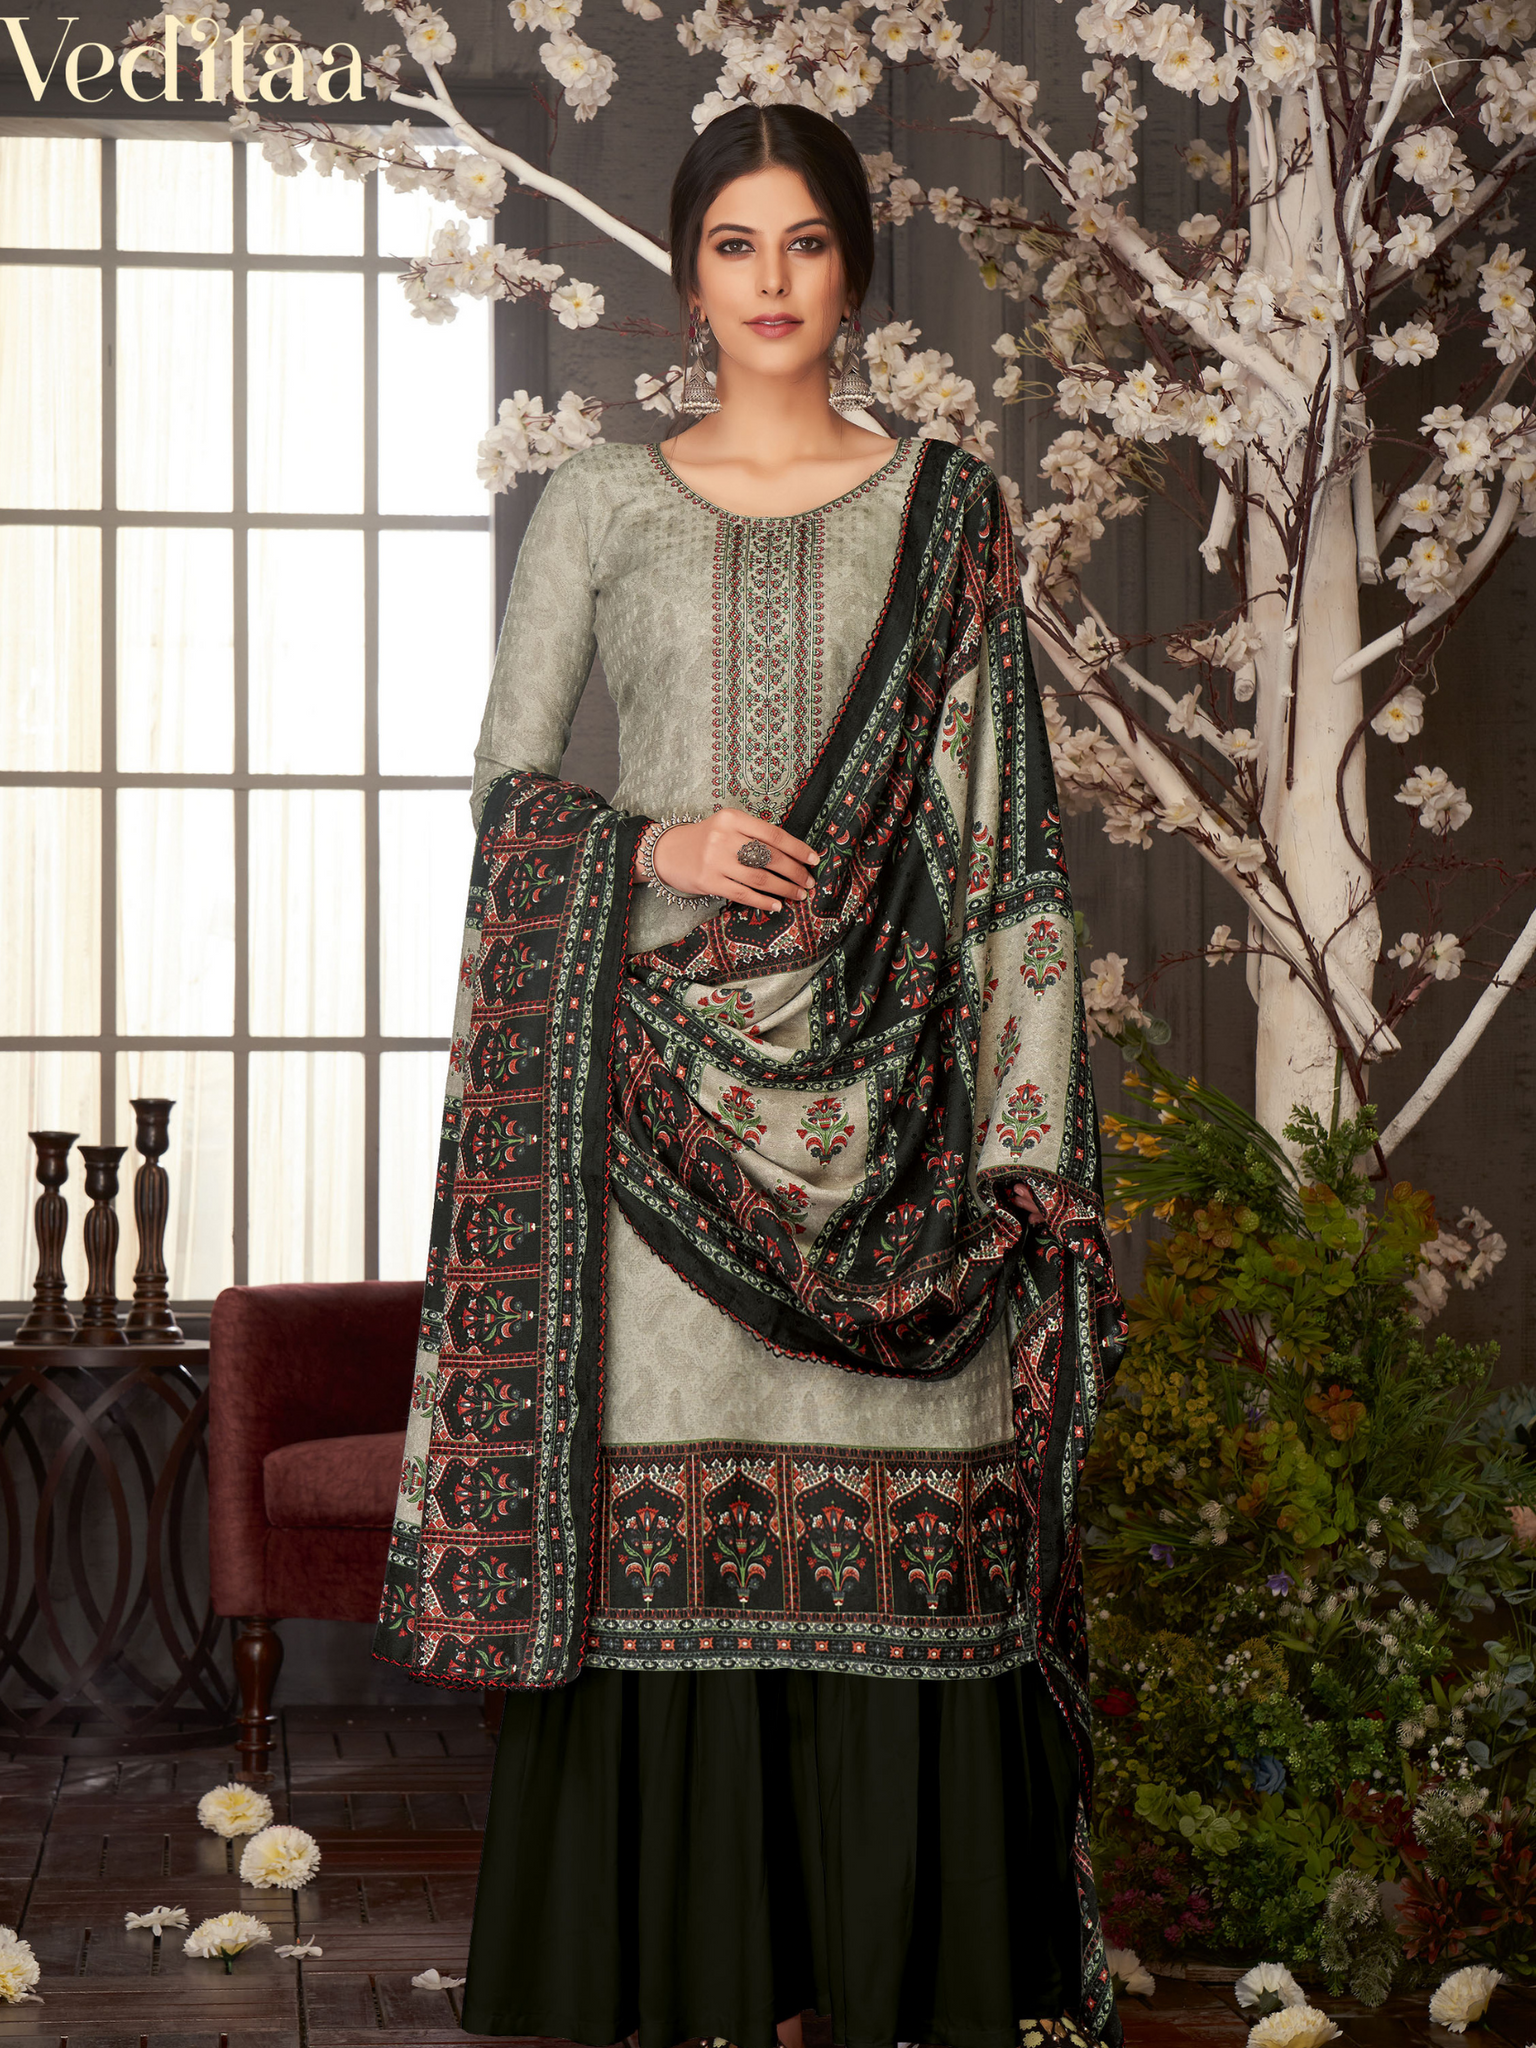 Veditaa Designer Fancy Thread Embroidery Suit - Zasha Clothing